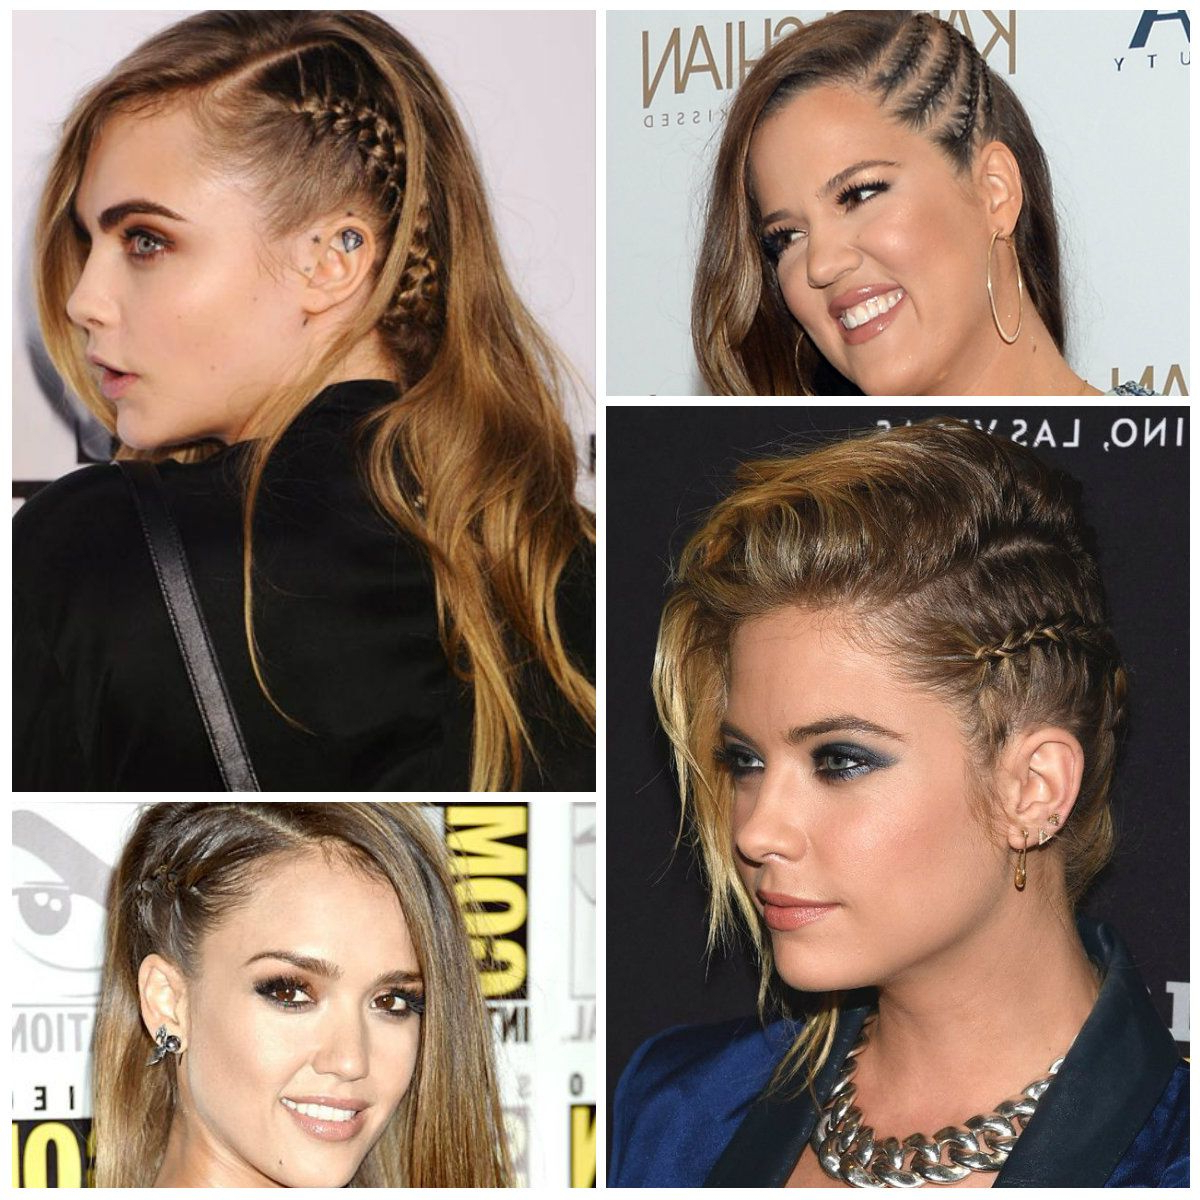 Current Faux Undercut Braid Hairstyles With Regard To 2016 Celebrities With Faux Undercut Braid Hairstyles (View 5 of 20)